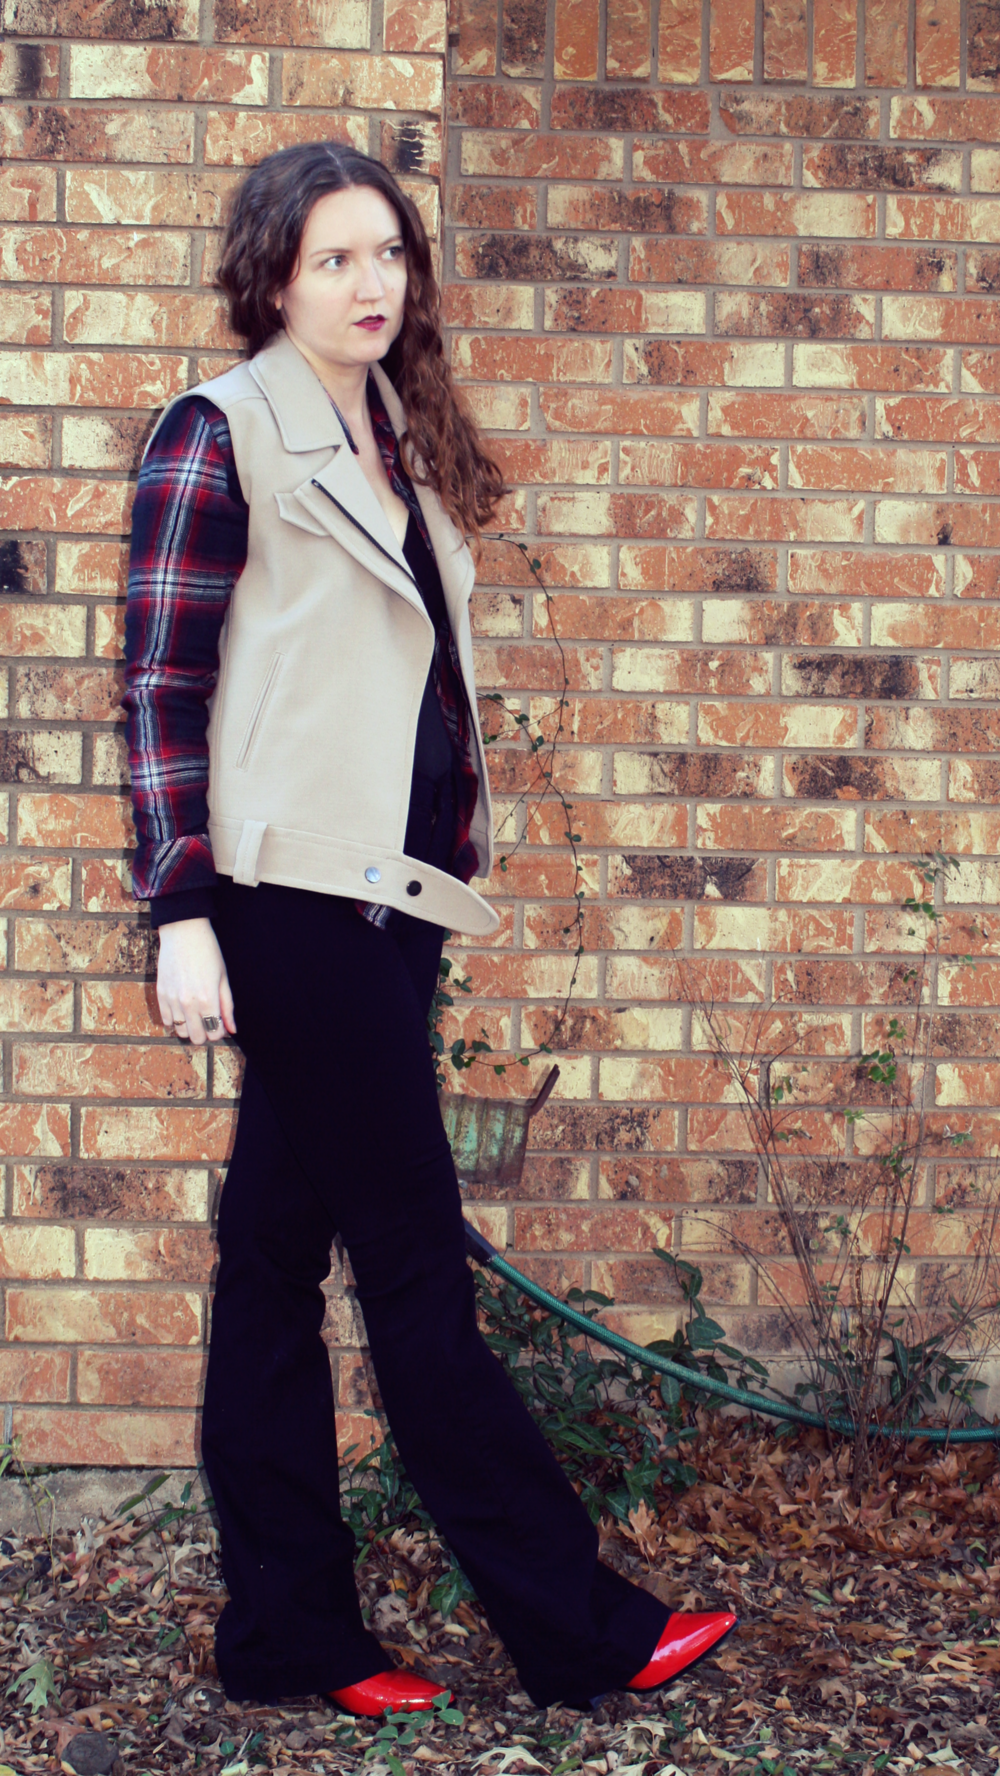 Madewell Plaid top + Topshop vest + James Jeans black flares + Madewell wrap body suit + Red Dolce Vita boots